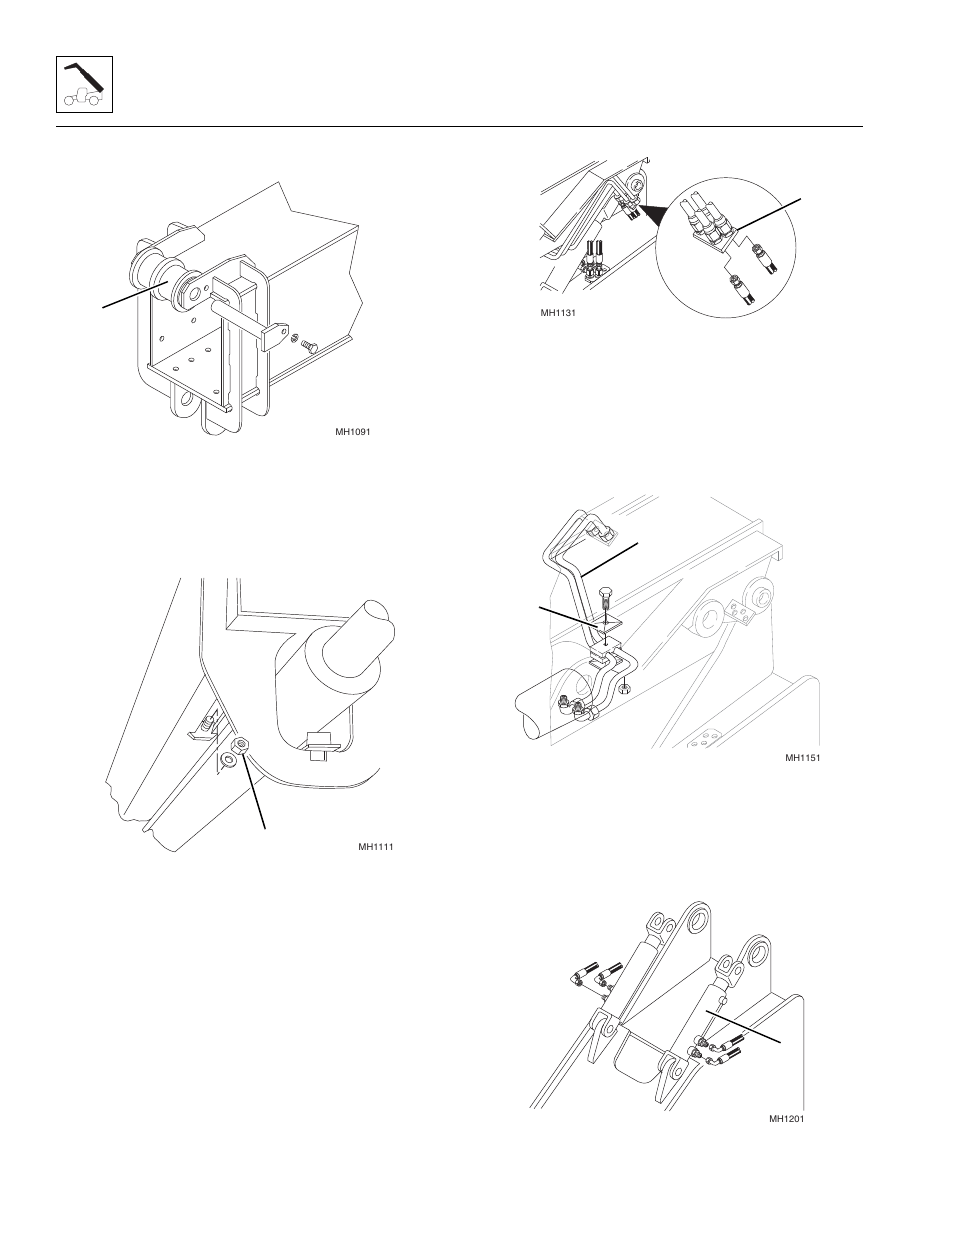 medium resolution of 4 first boom section removal first boom section removal skytrak 8042 service manual user manual page 46 230